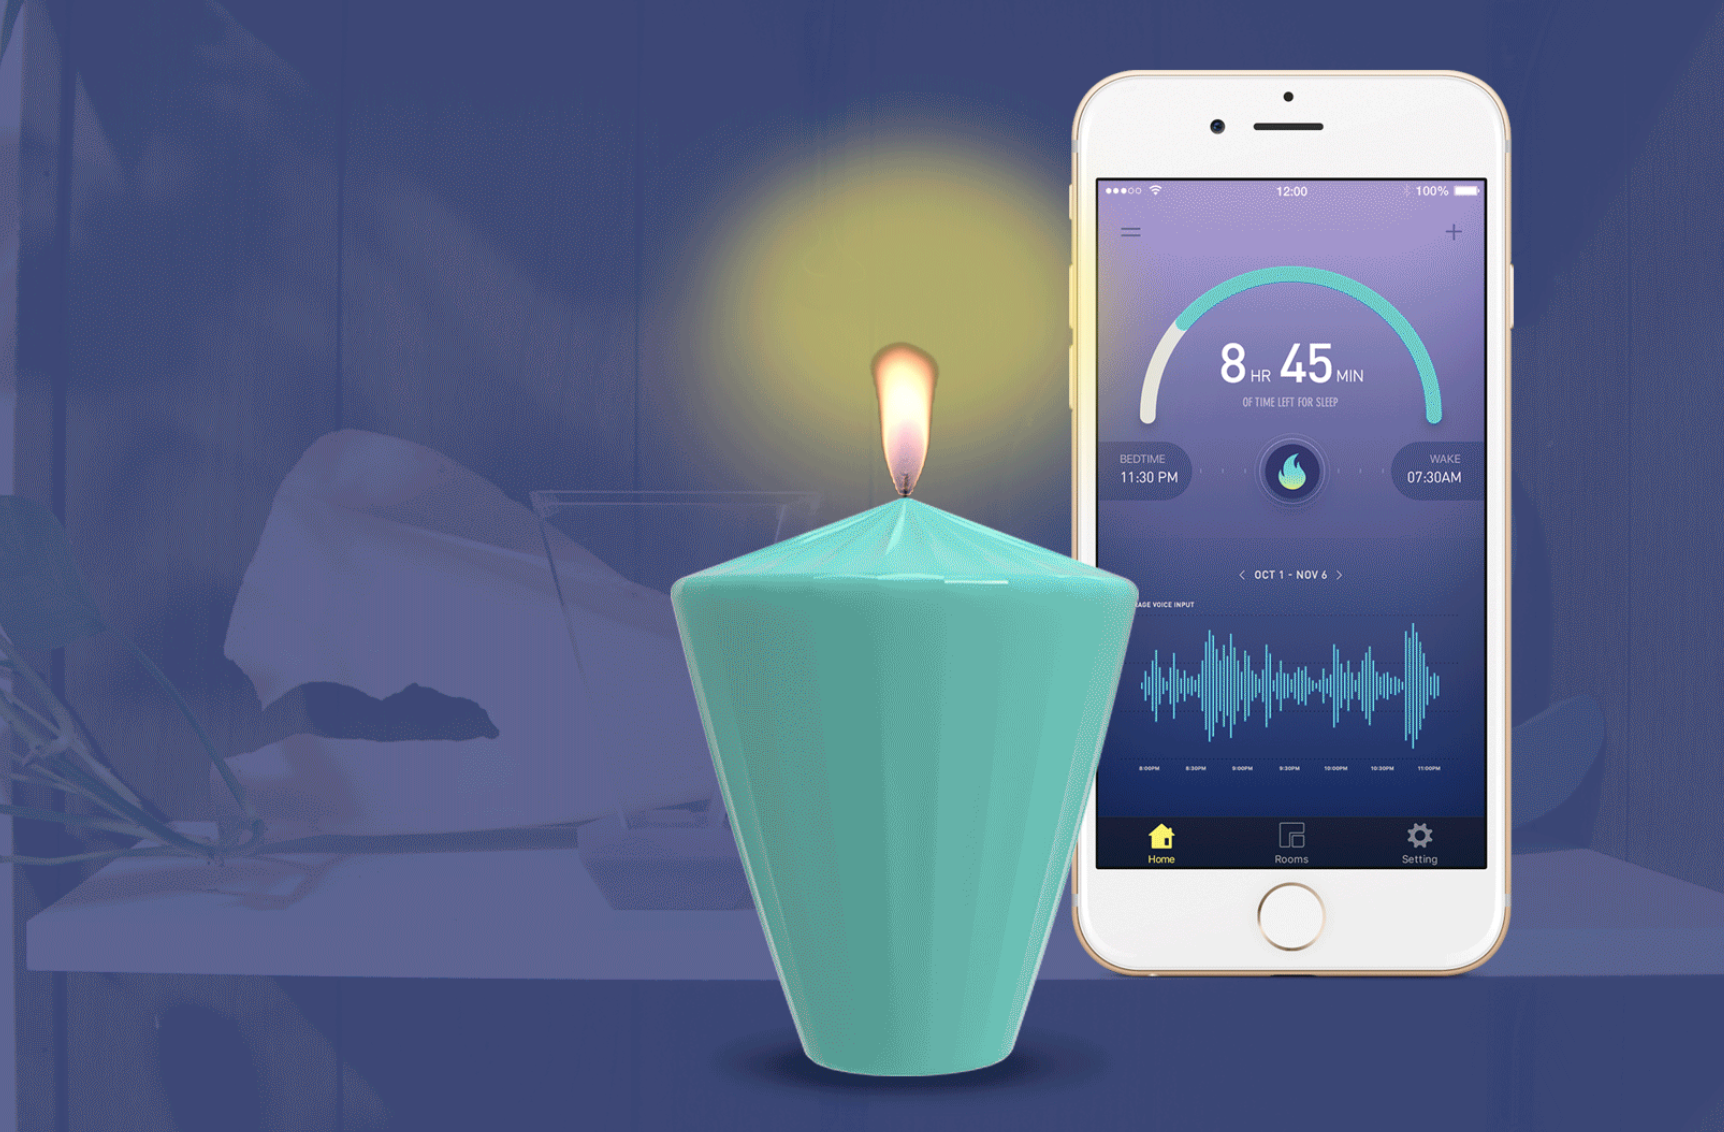 Corus: An ambient and instinctual system to promote dyadic sleep in cohabitating couples